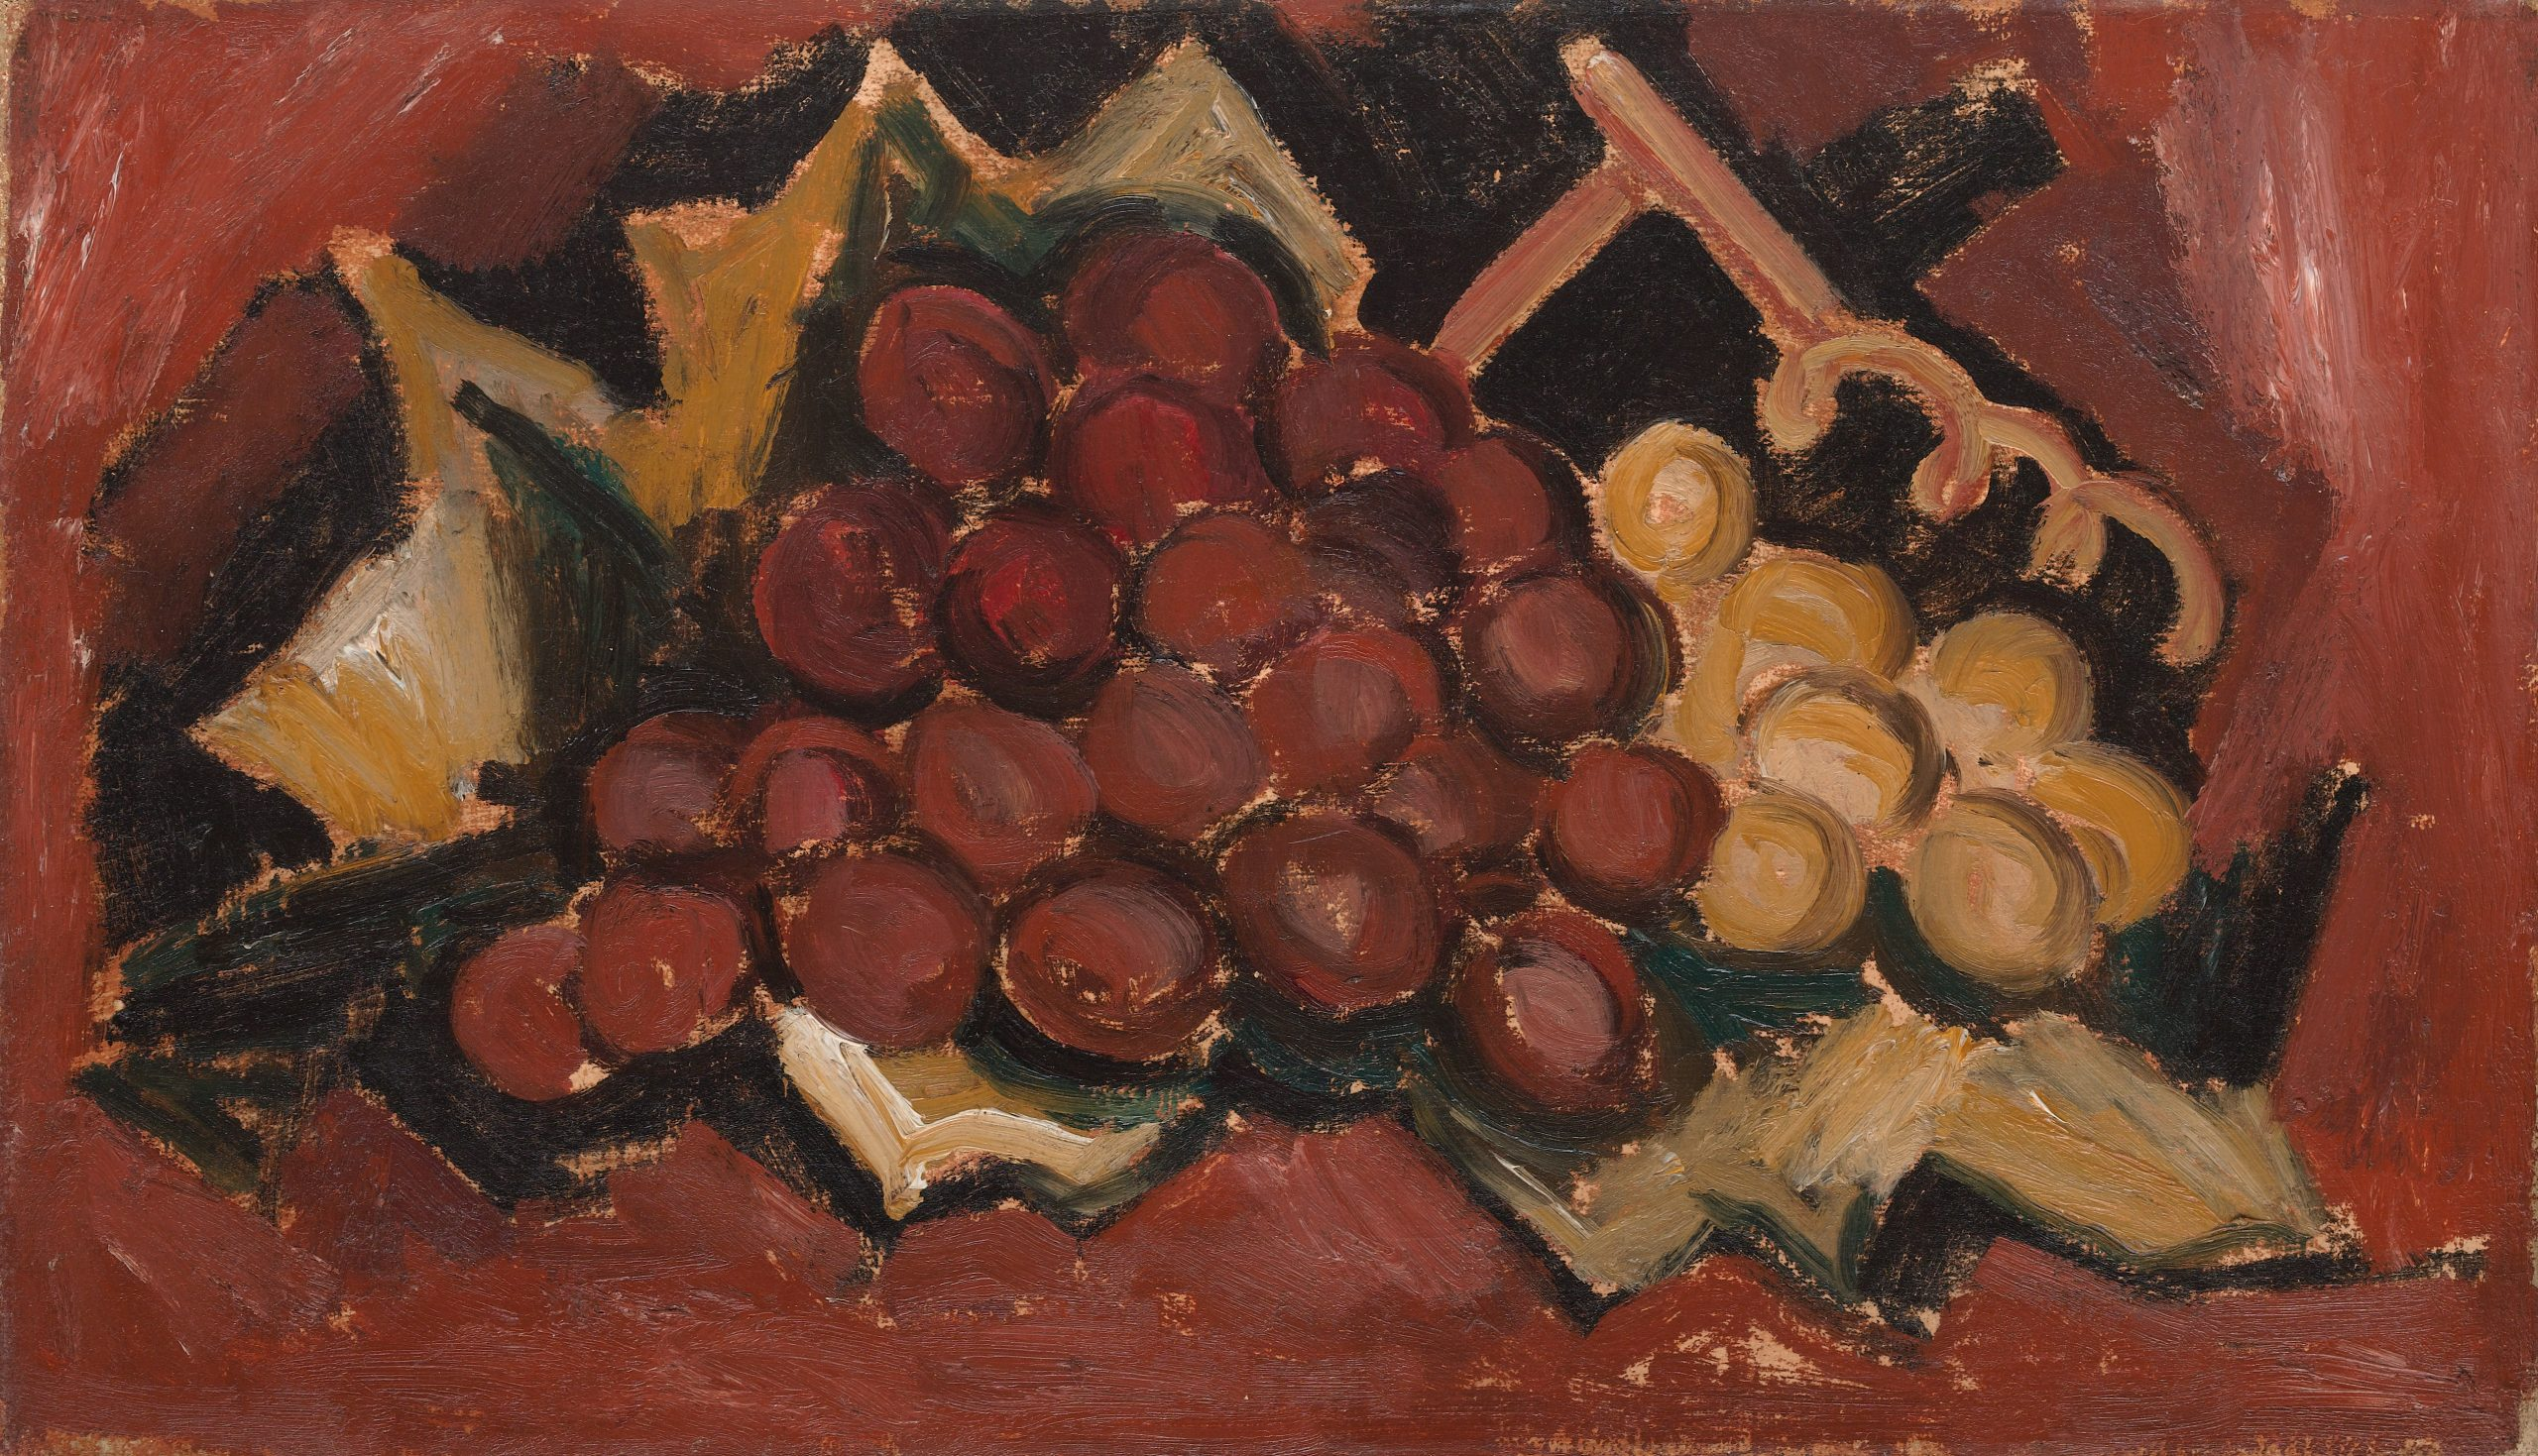 A bunch of red and yellow grapes wrapped in brown paper set against a deep red background.